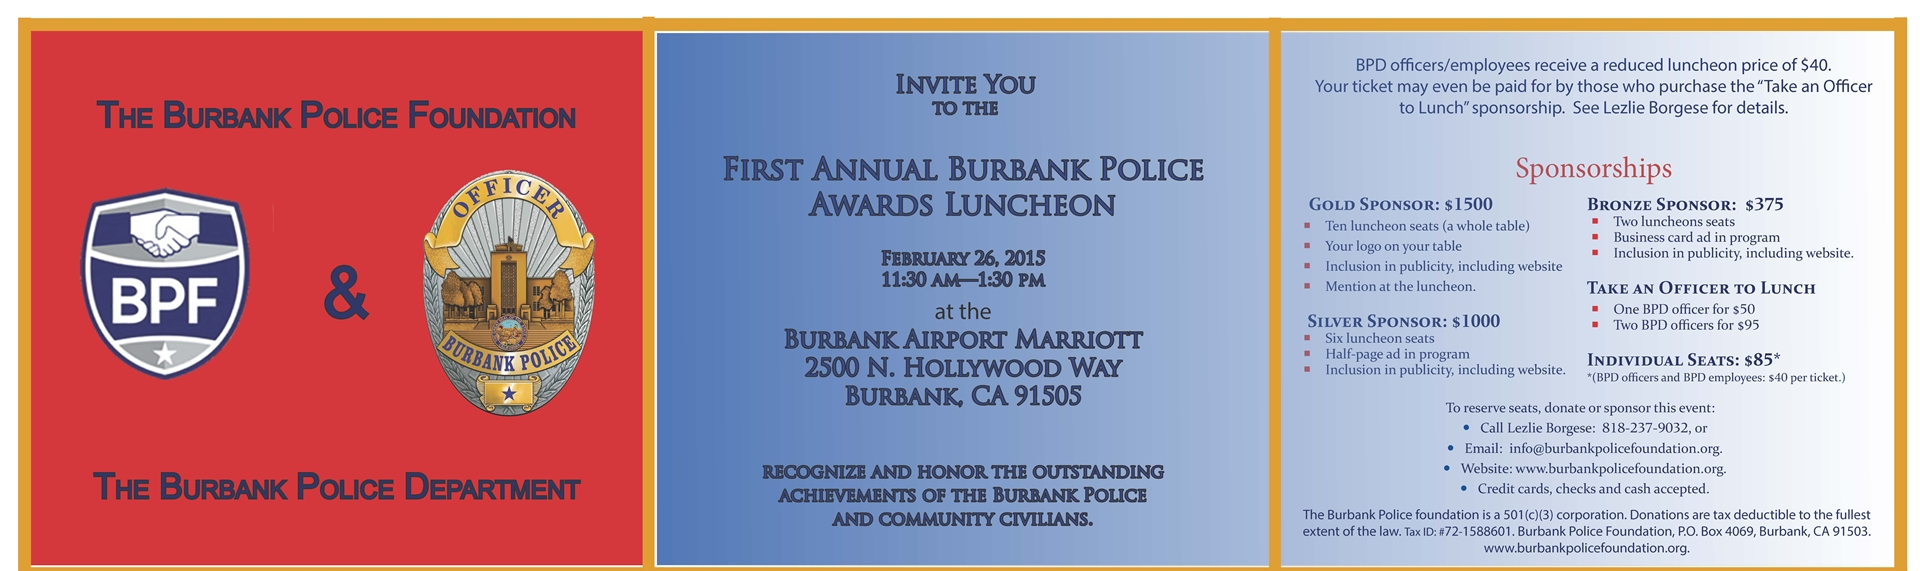 FIRST ANNUAL BURBANK POLICE AWARDS LUNCHEON 02-26-15